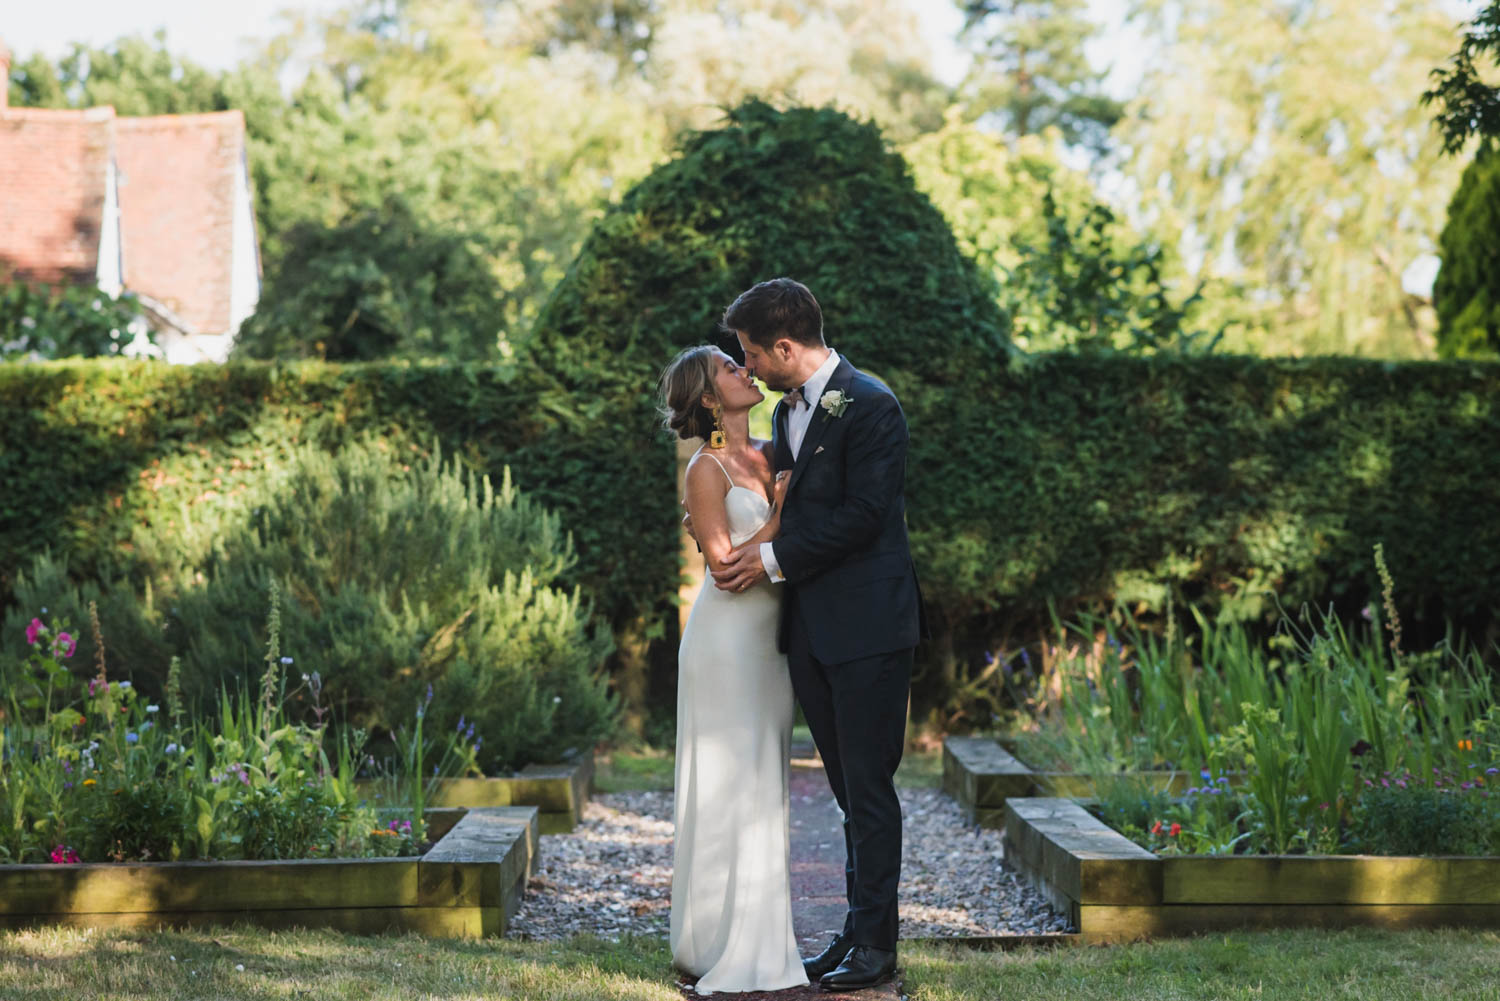 Wedding portrait at garden, Carine Bea Photography